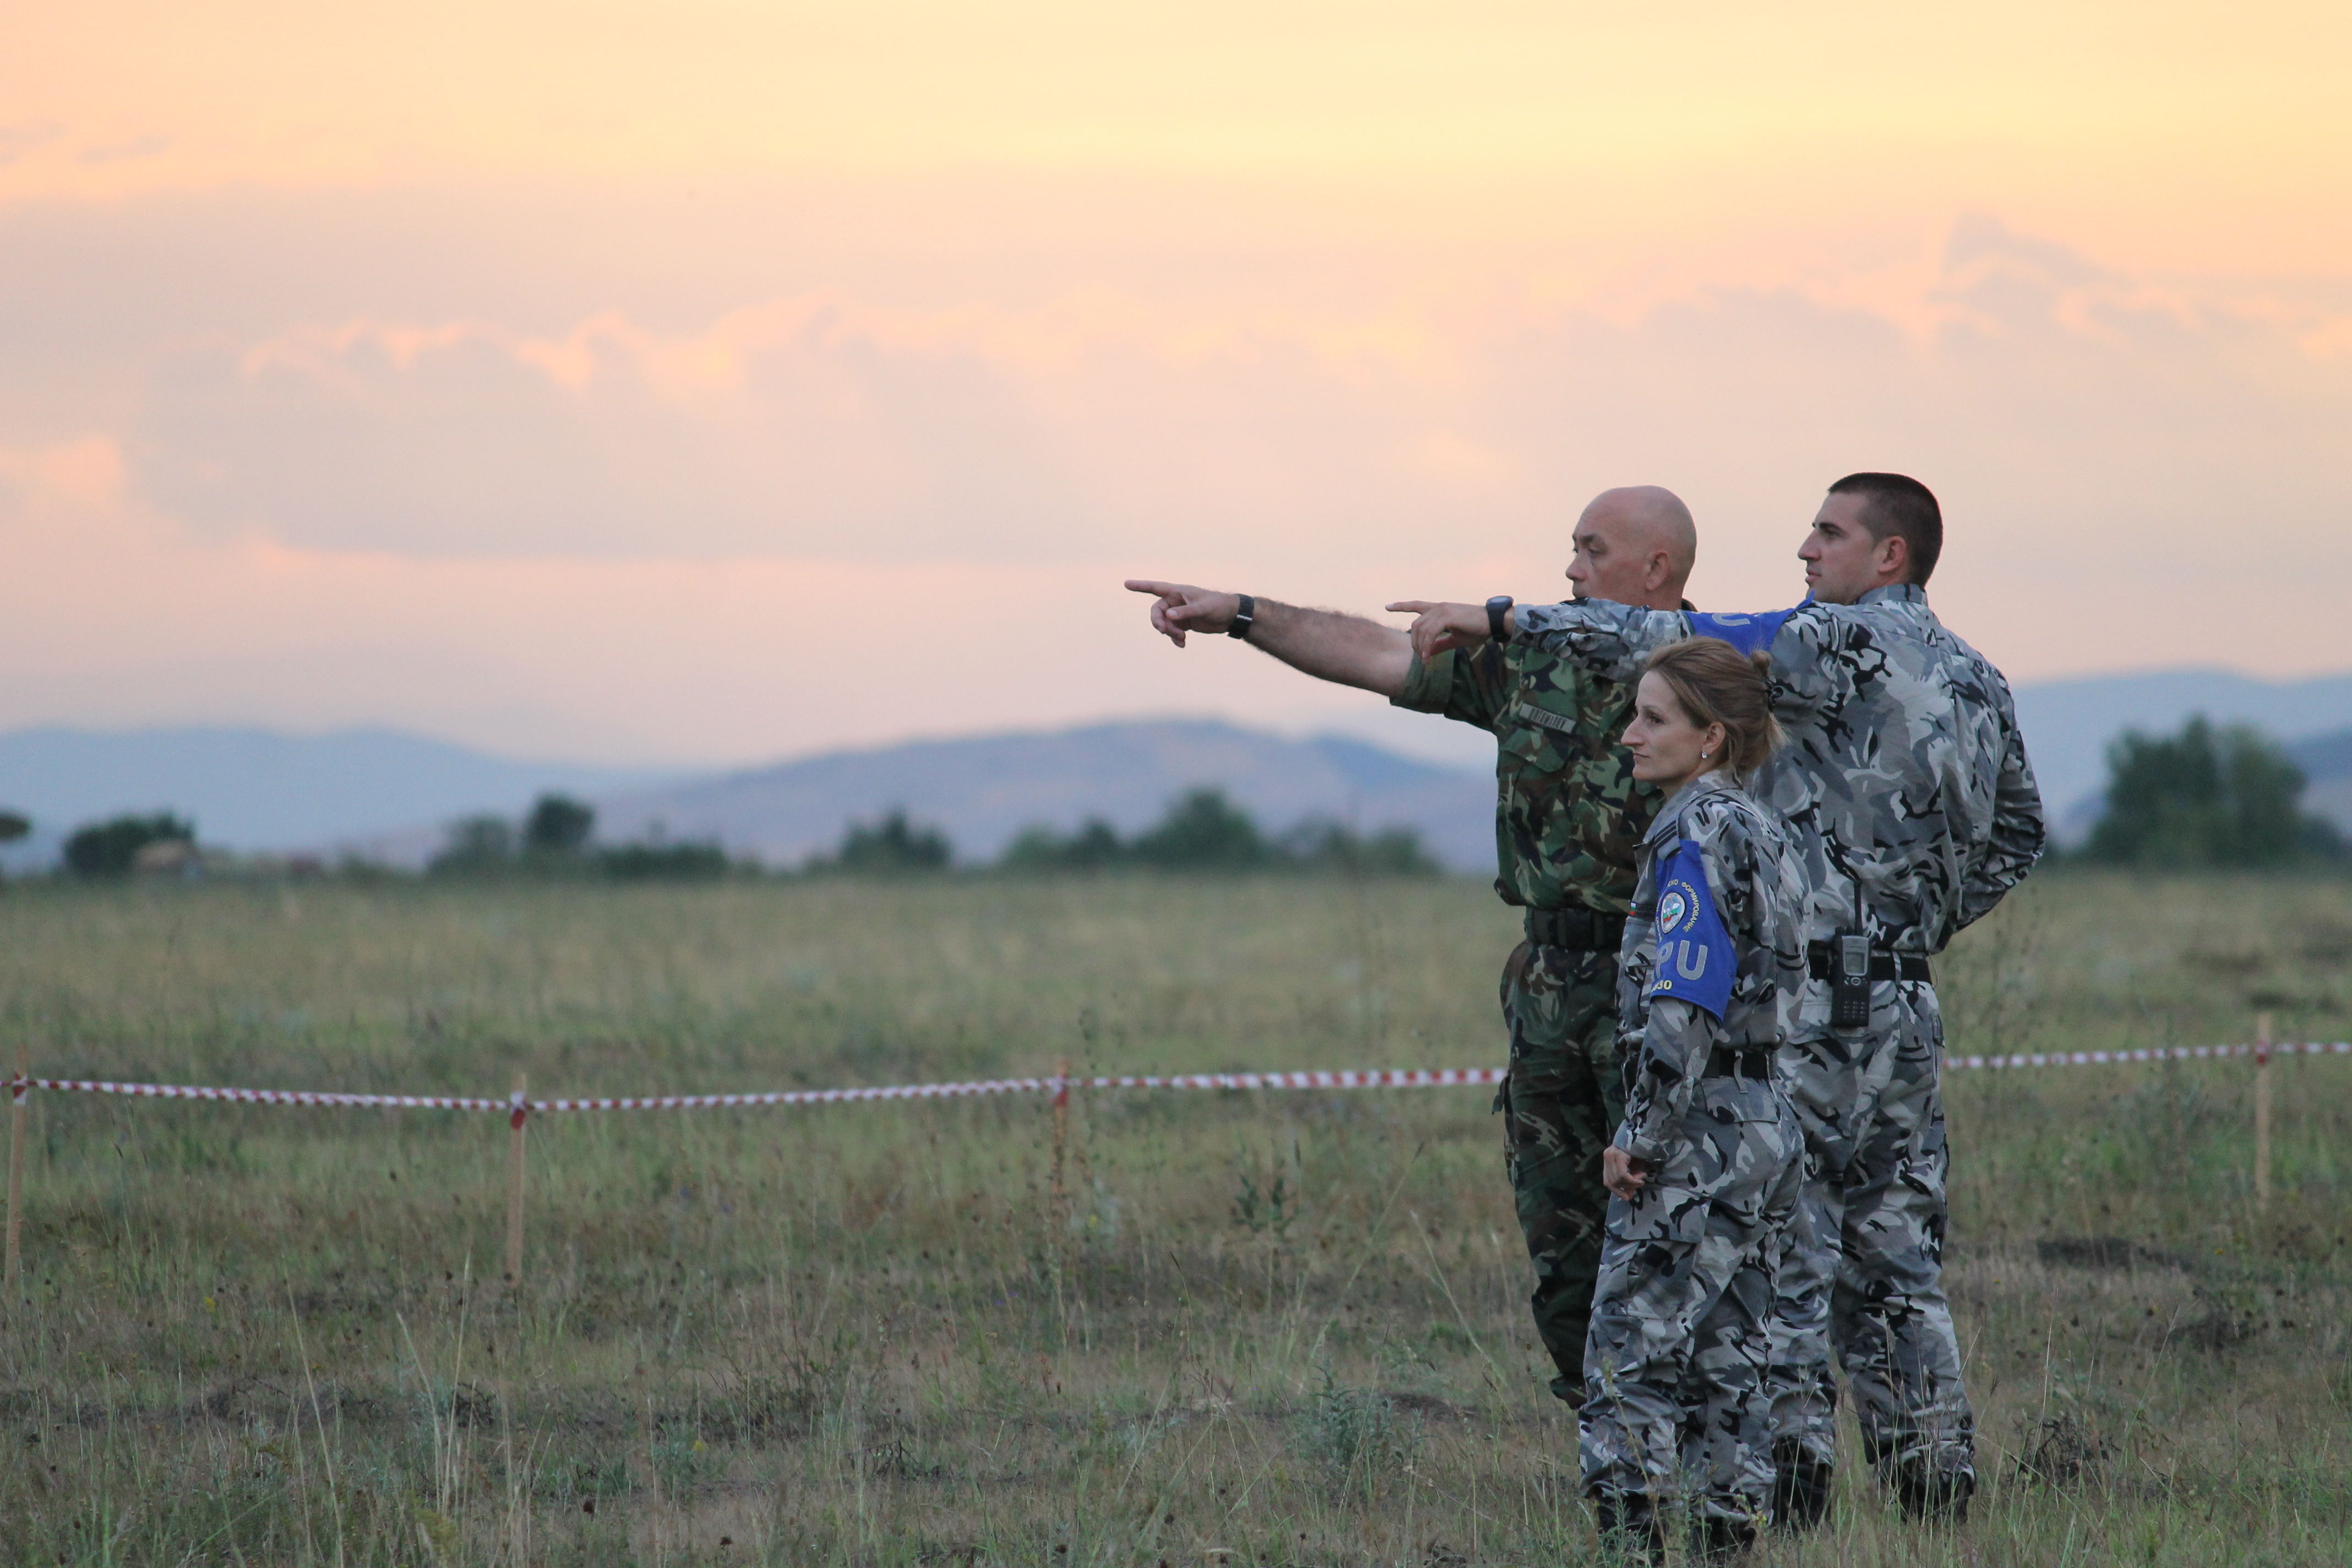 Bulgarian soldiers watch as paratroopers drop into the landing zone at sunset. Bulgaria was the lead host of the annual Saber Guardian exercise, which is a U.S. Army-led event that incorporates military activities in Hungary, Bulgaria and Romania. (Jen Judson/Staff)